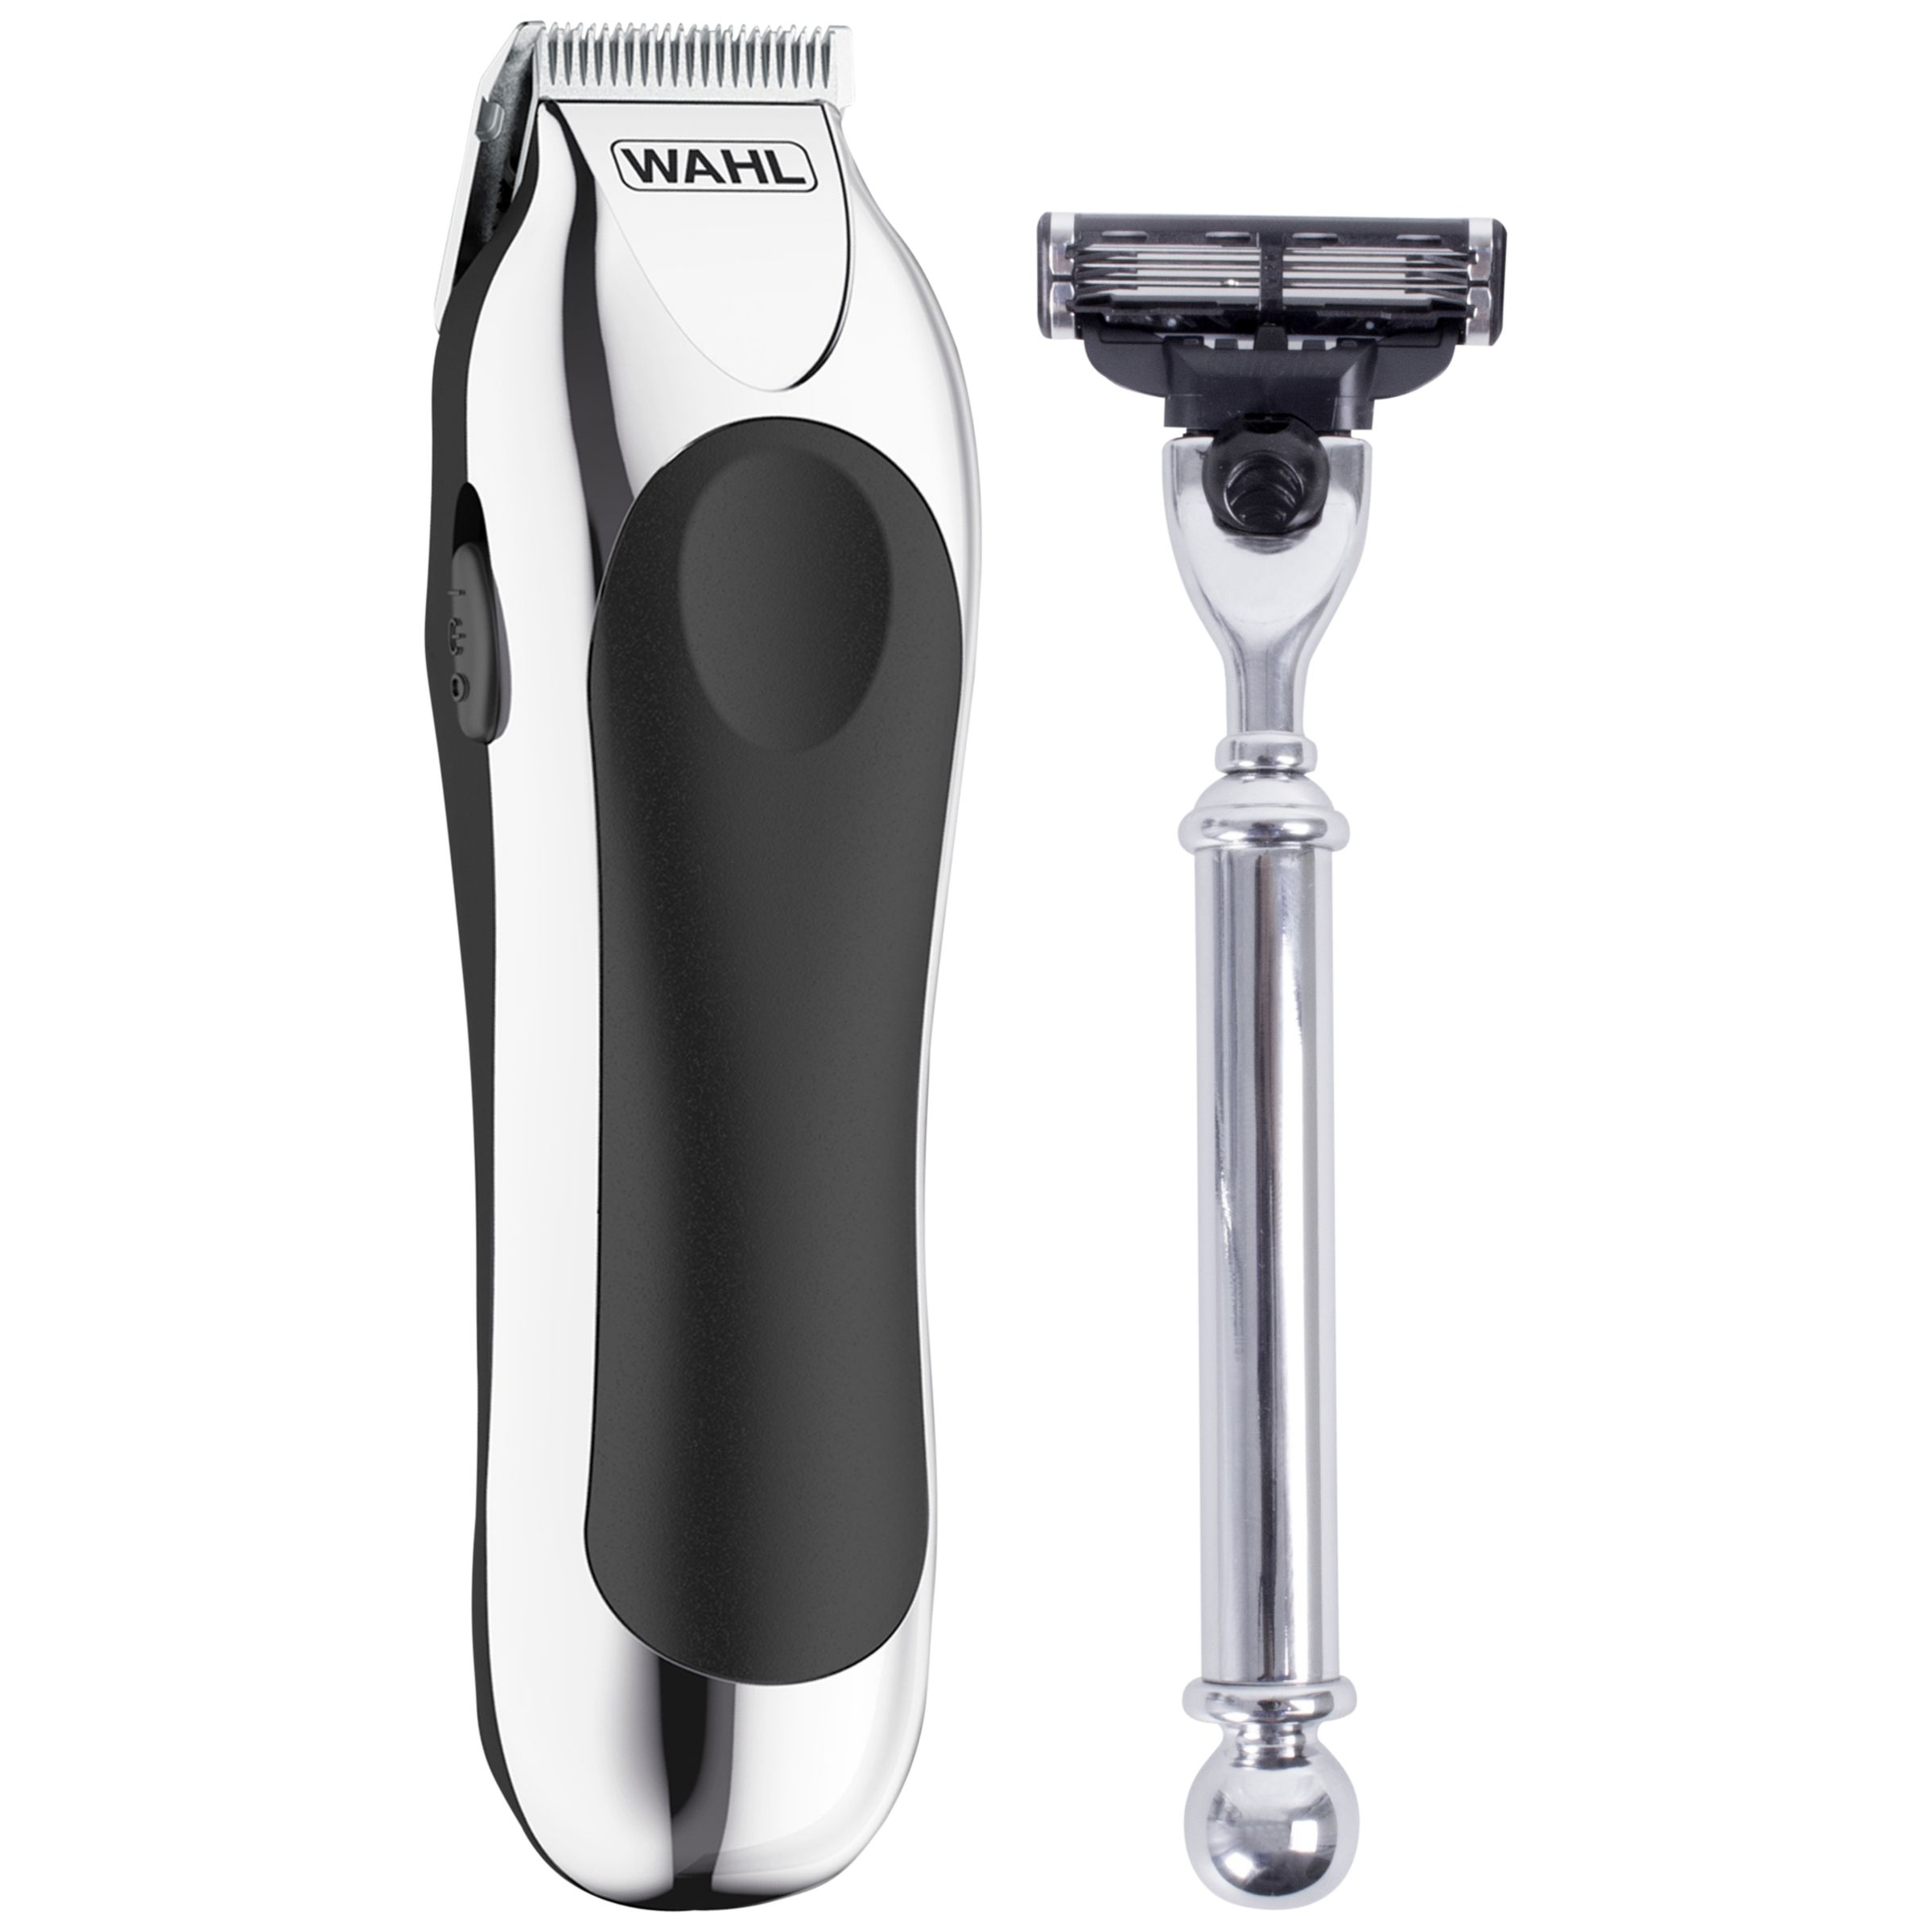 Wahl Wahl Shave and Trim Set, Silver